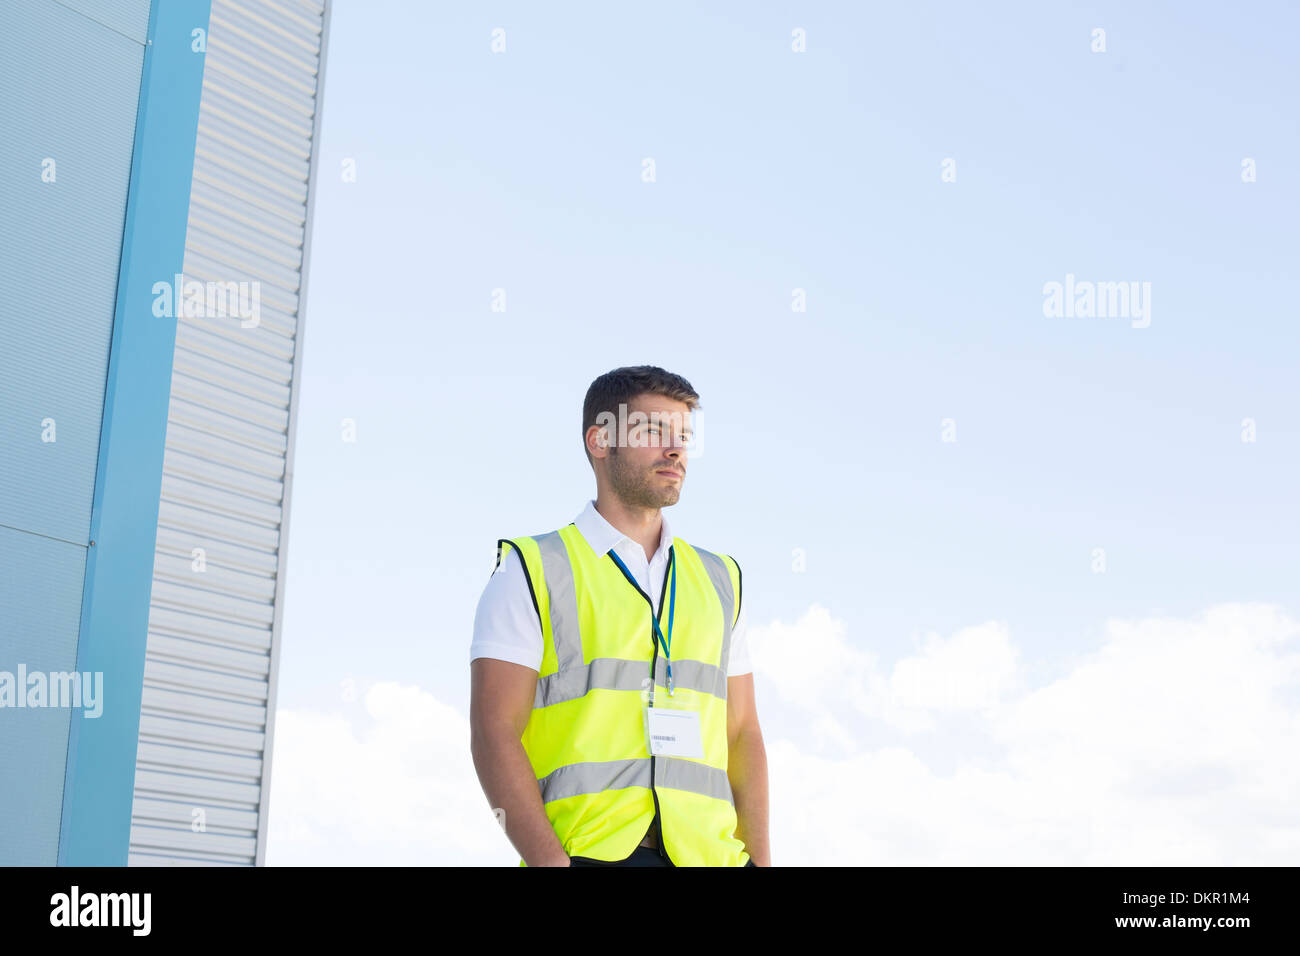 Worker standing below highrise building - Stock Image